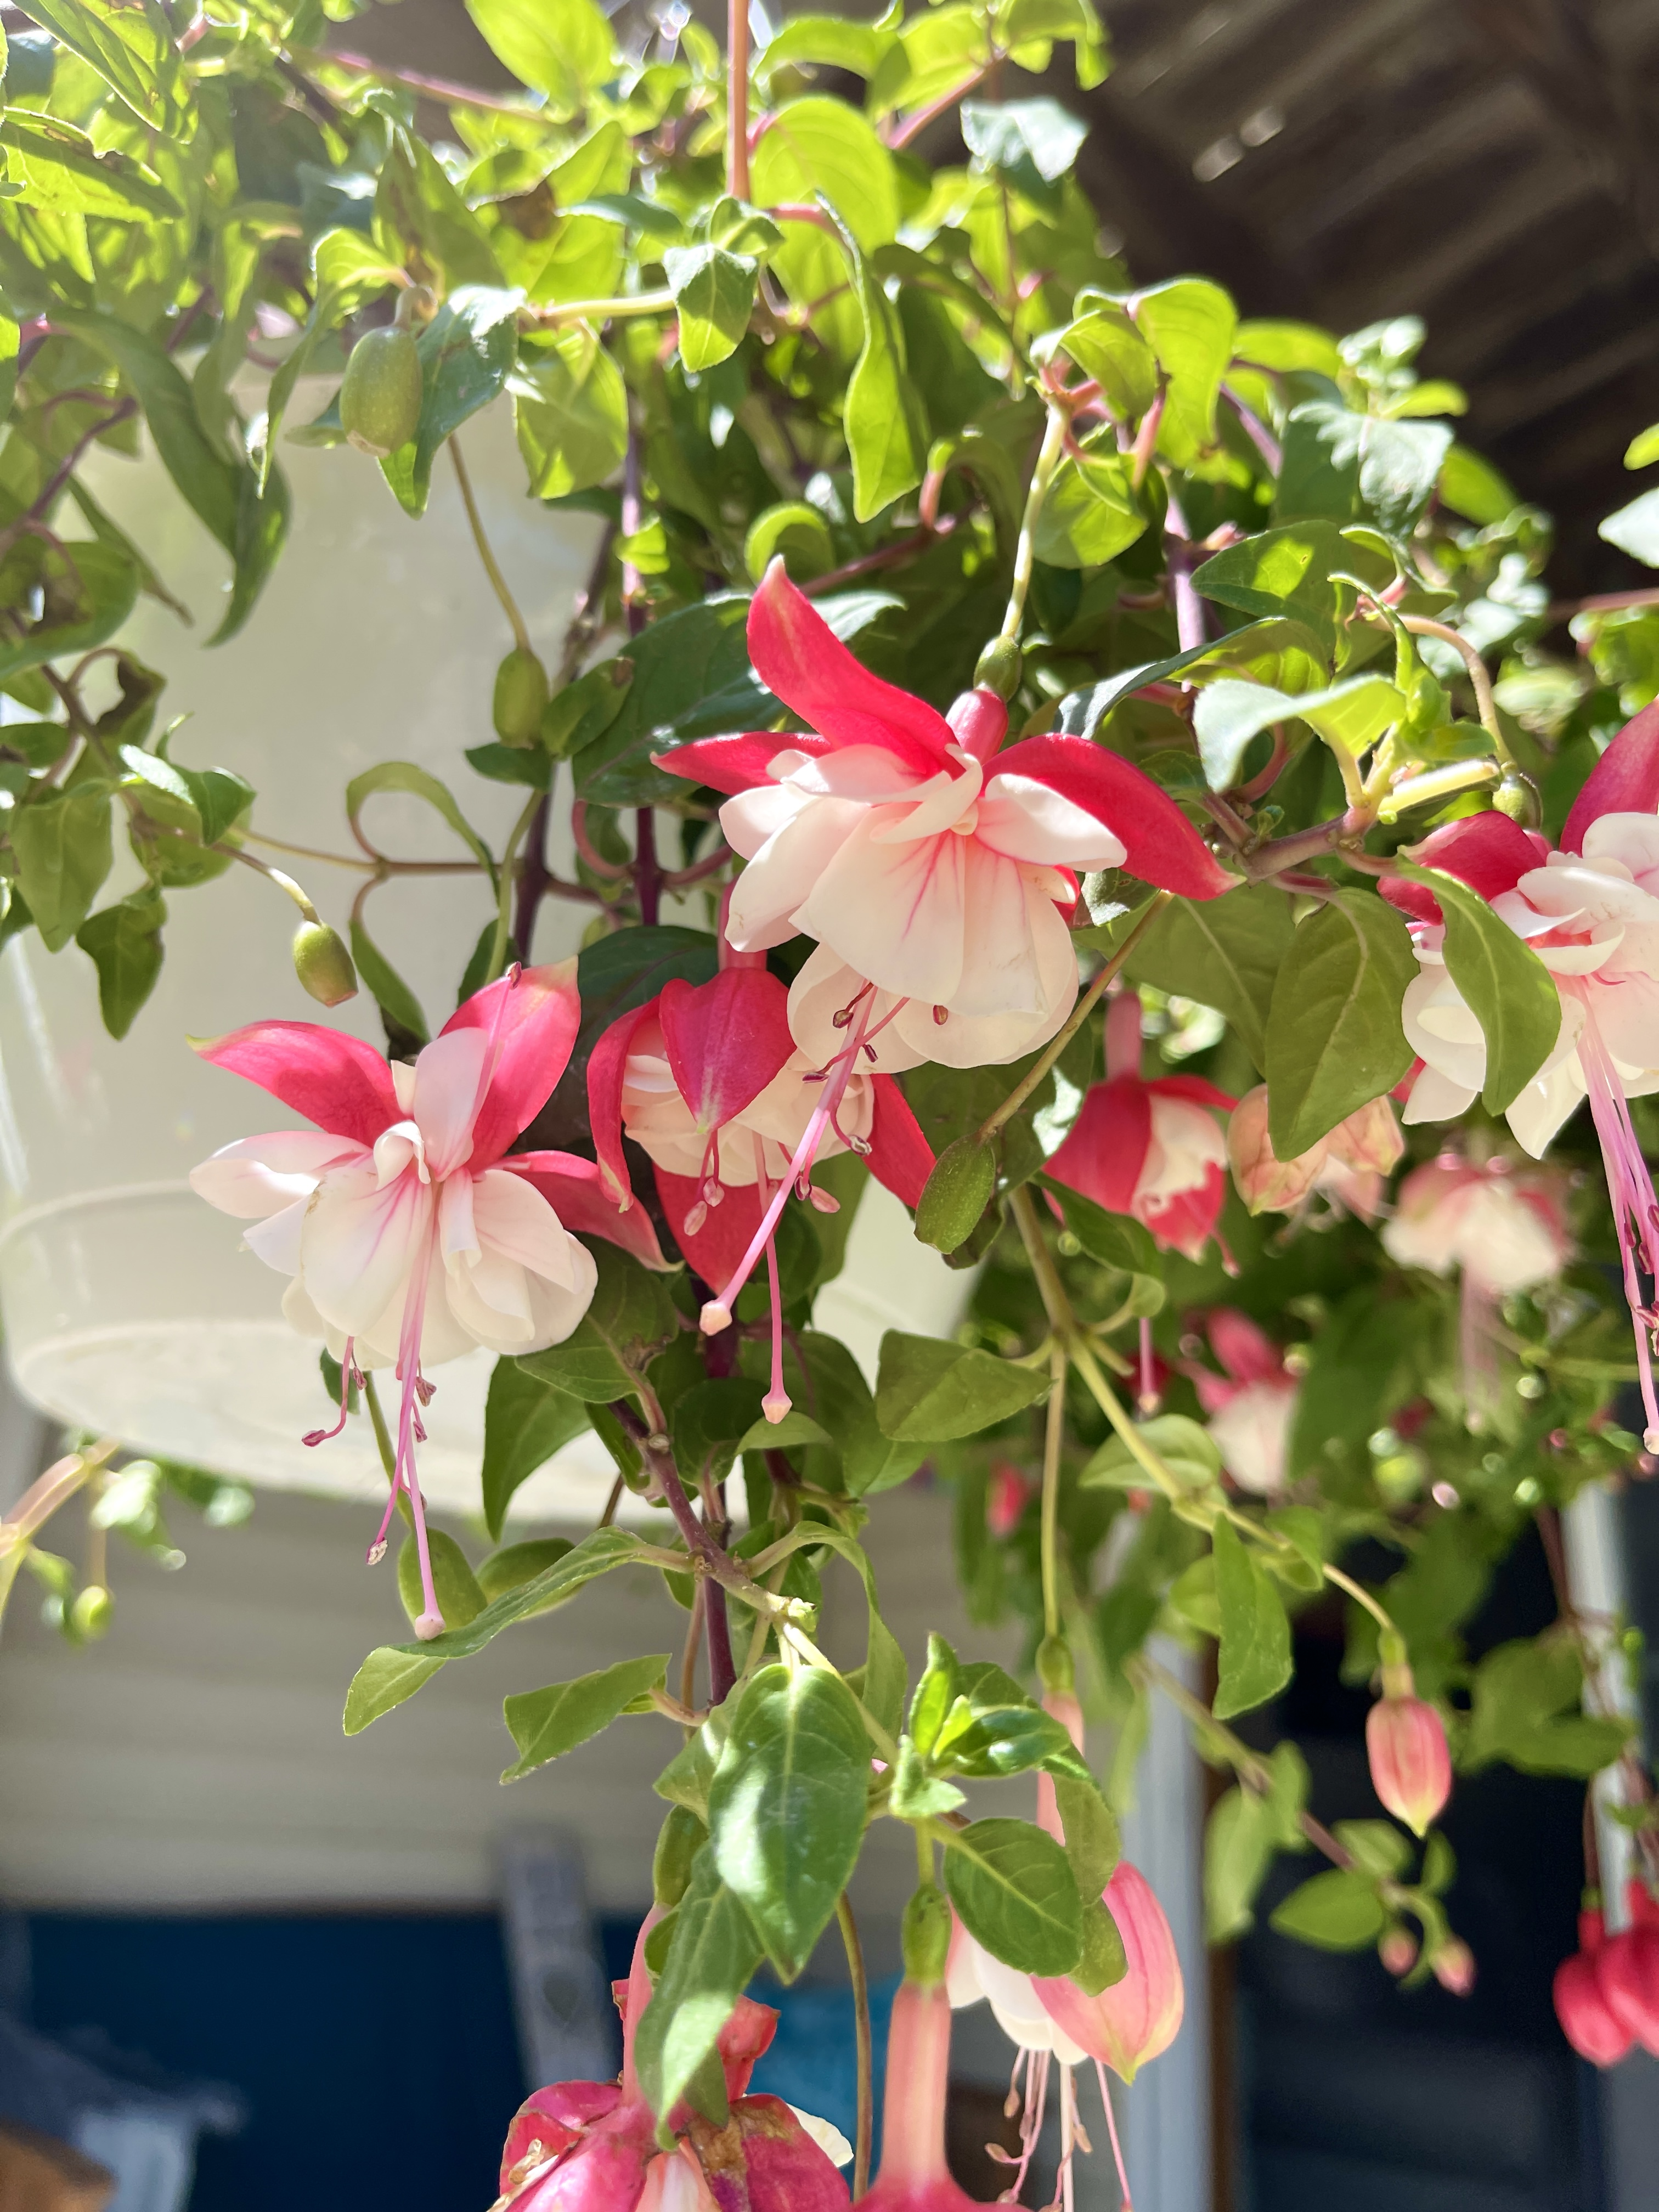 Fuchsia, a pink and white bloom, in a hanging baskets